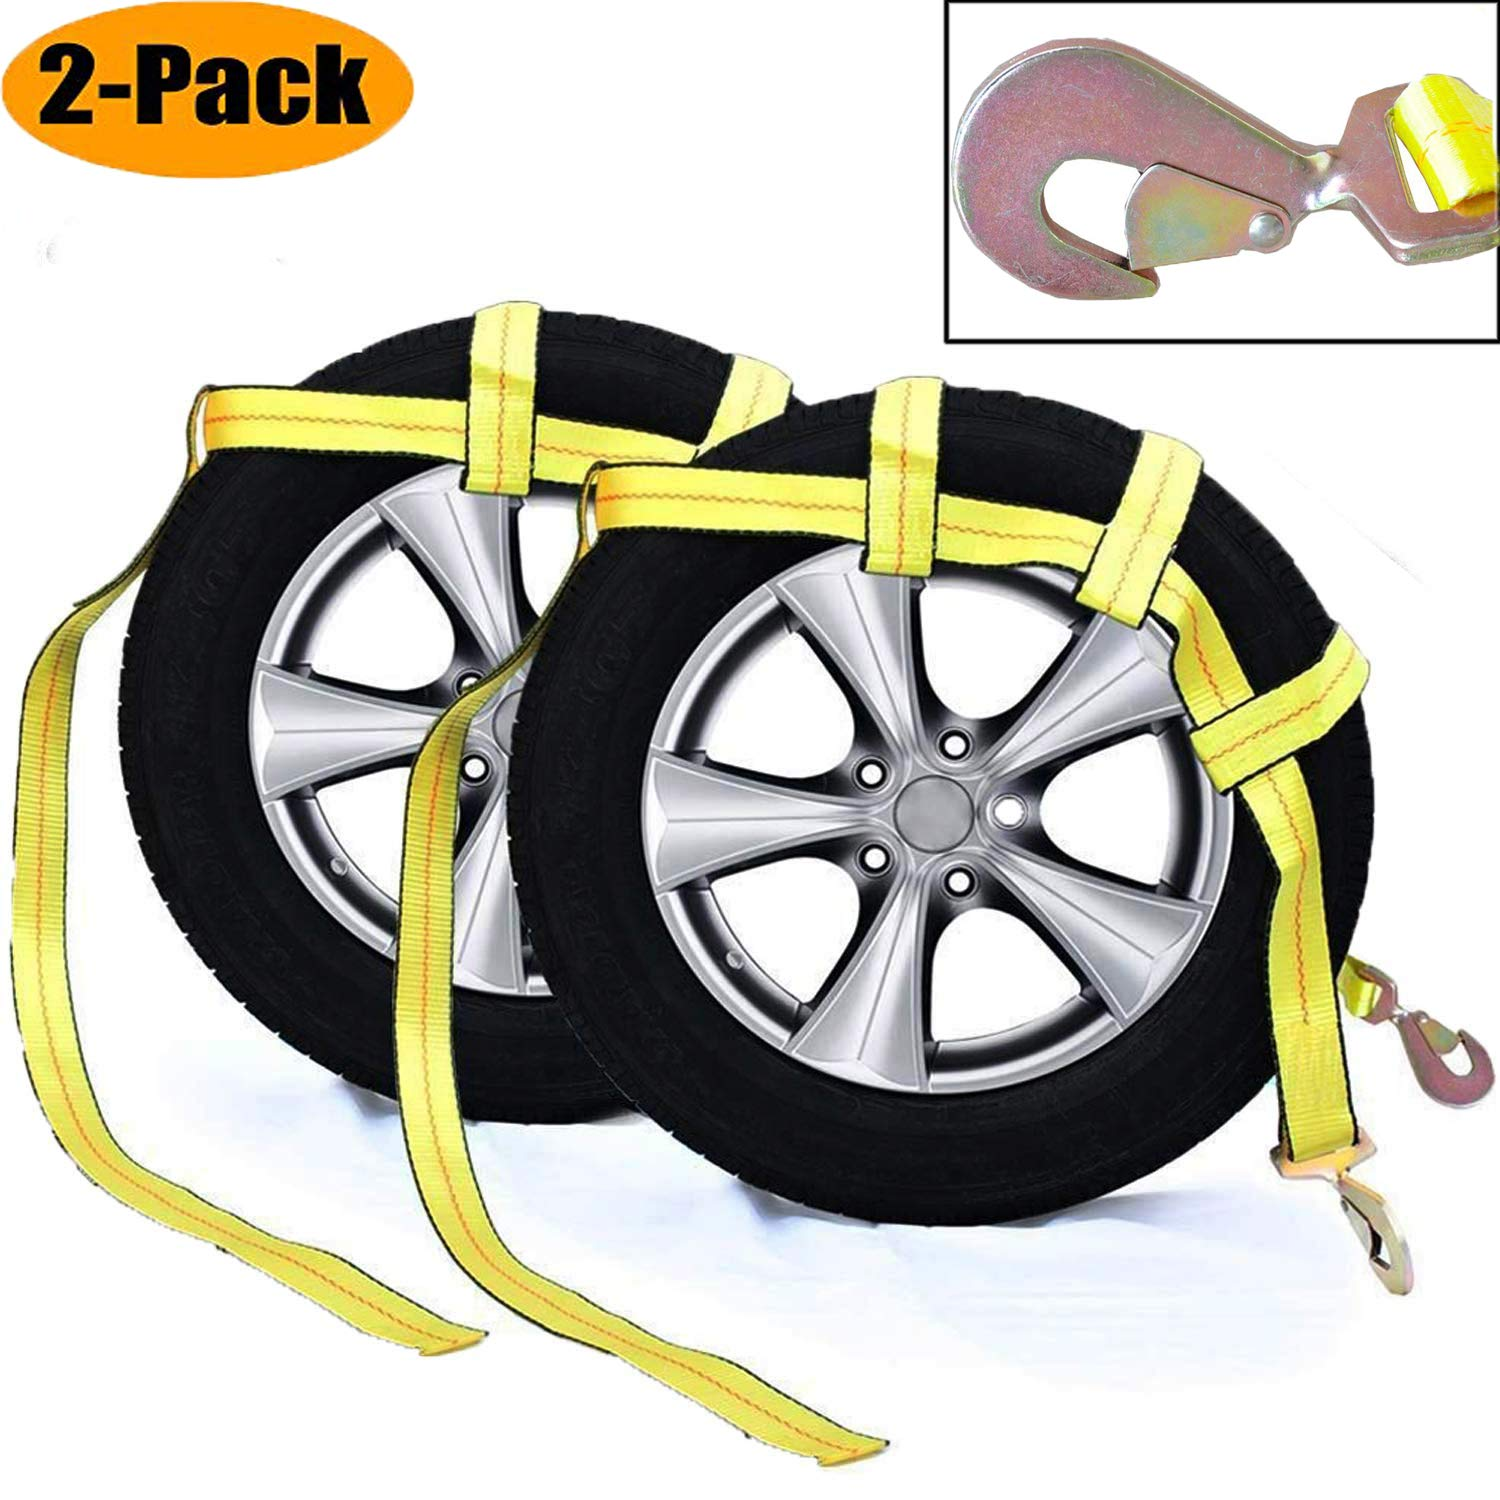 Tow Dolly Basket Strap with Twisted Snap Hooks for Small to Medium Size Tires by Robbor Brand 2 inch Webbing 12,000 lbs Breaking Strength Tire Bonnet&Tire Net Fits Most 14-17'' Tires by Robbor